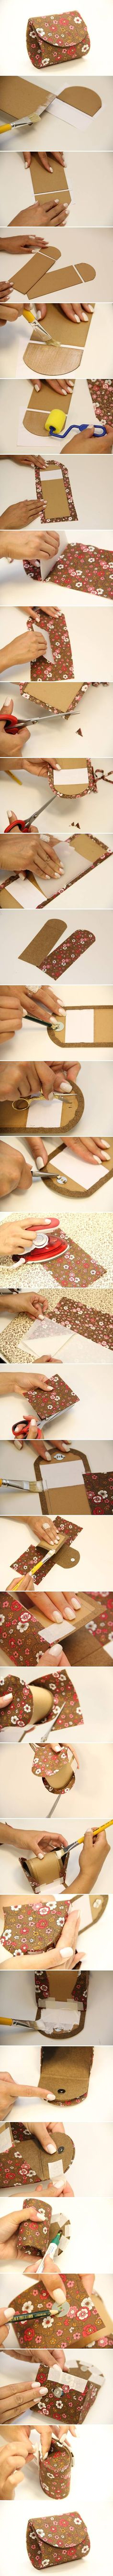 DIY Easy Money Pouch... Great to make for them young gals that still have to go to the laundromat and have to carry them quarters!... Why not go in style? ;)